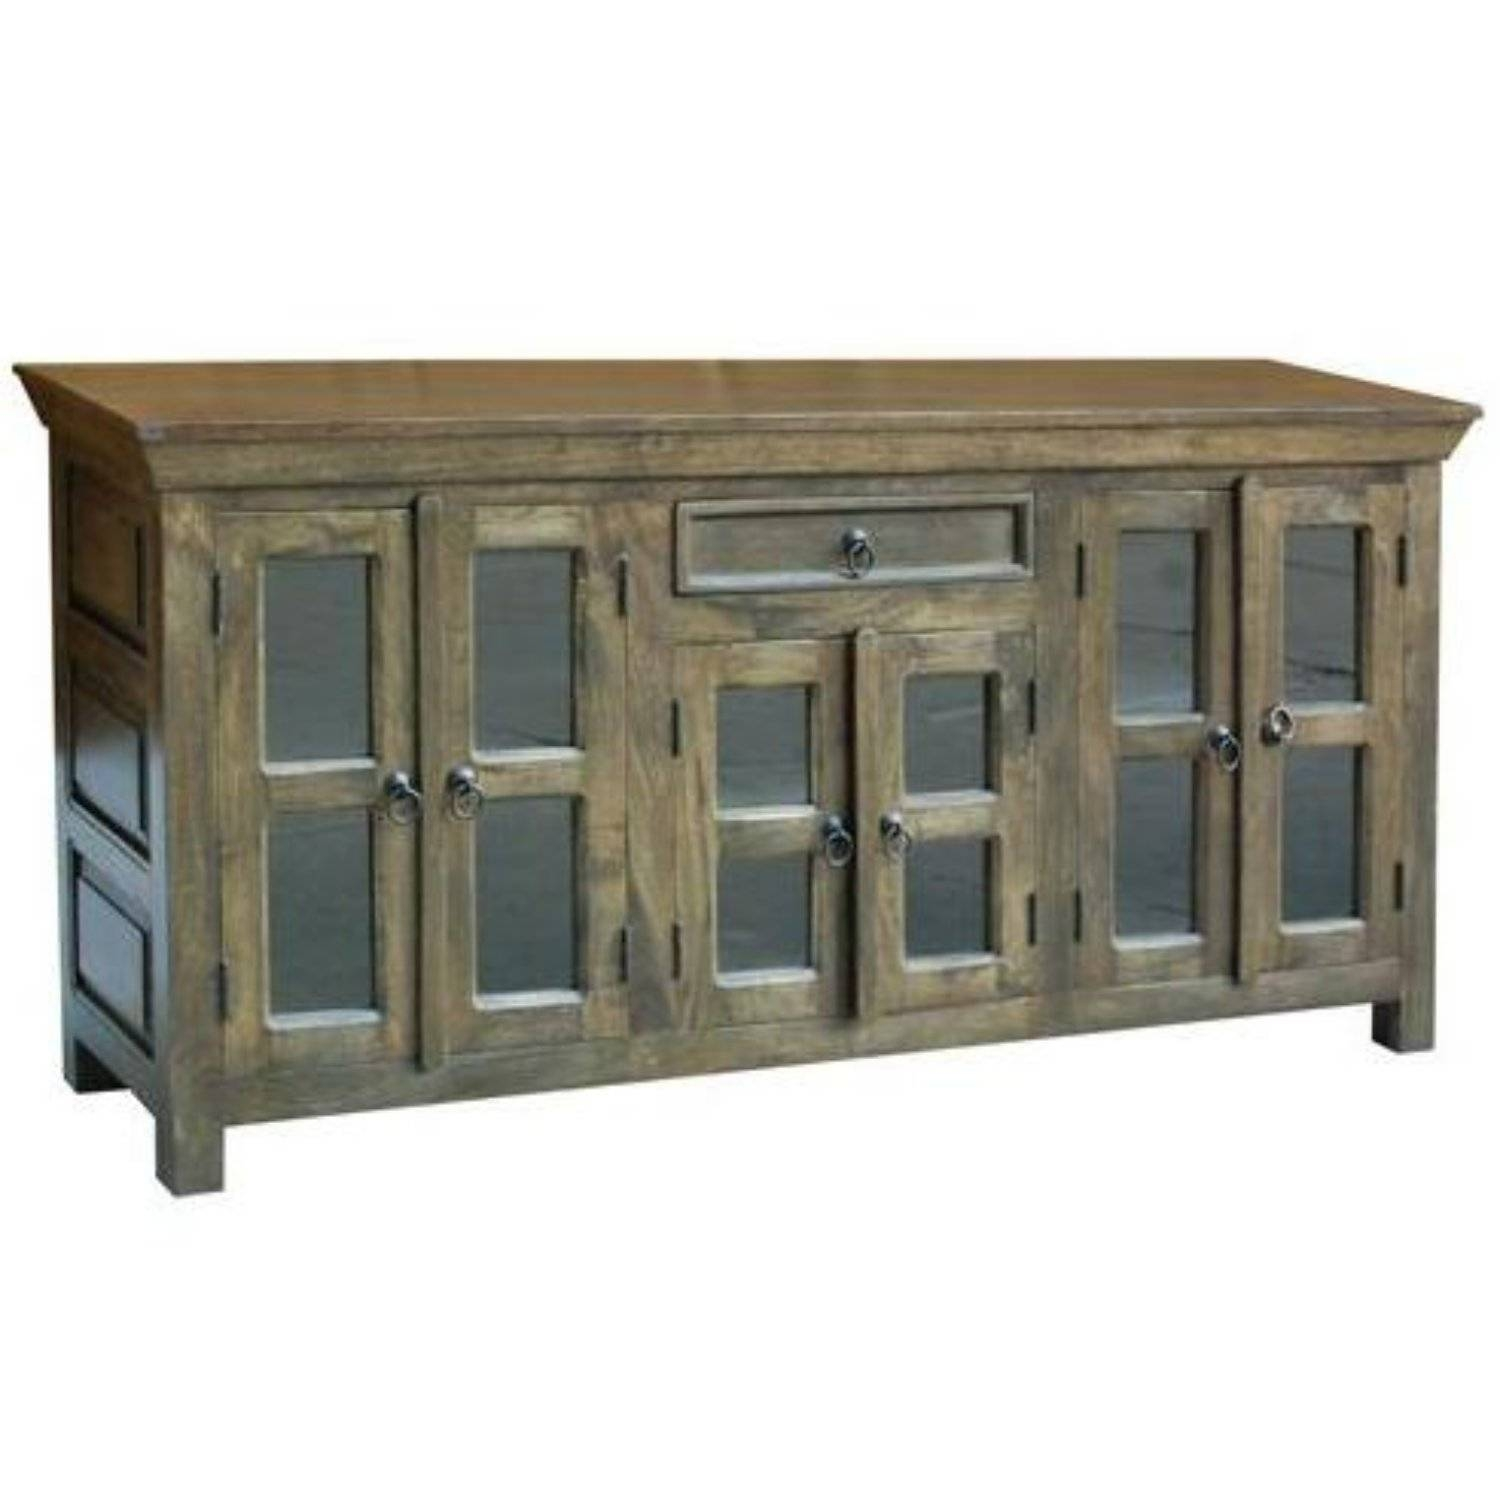 Glass Door Sideboard | Upscale Consignment Intended For Sideboards With Glass Doors (#6 of 20)